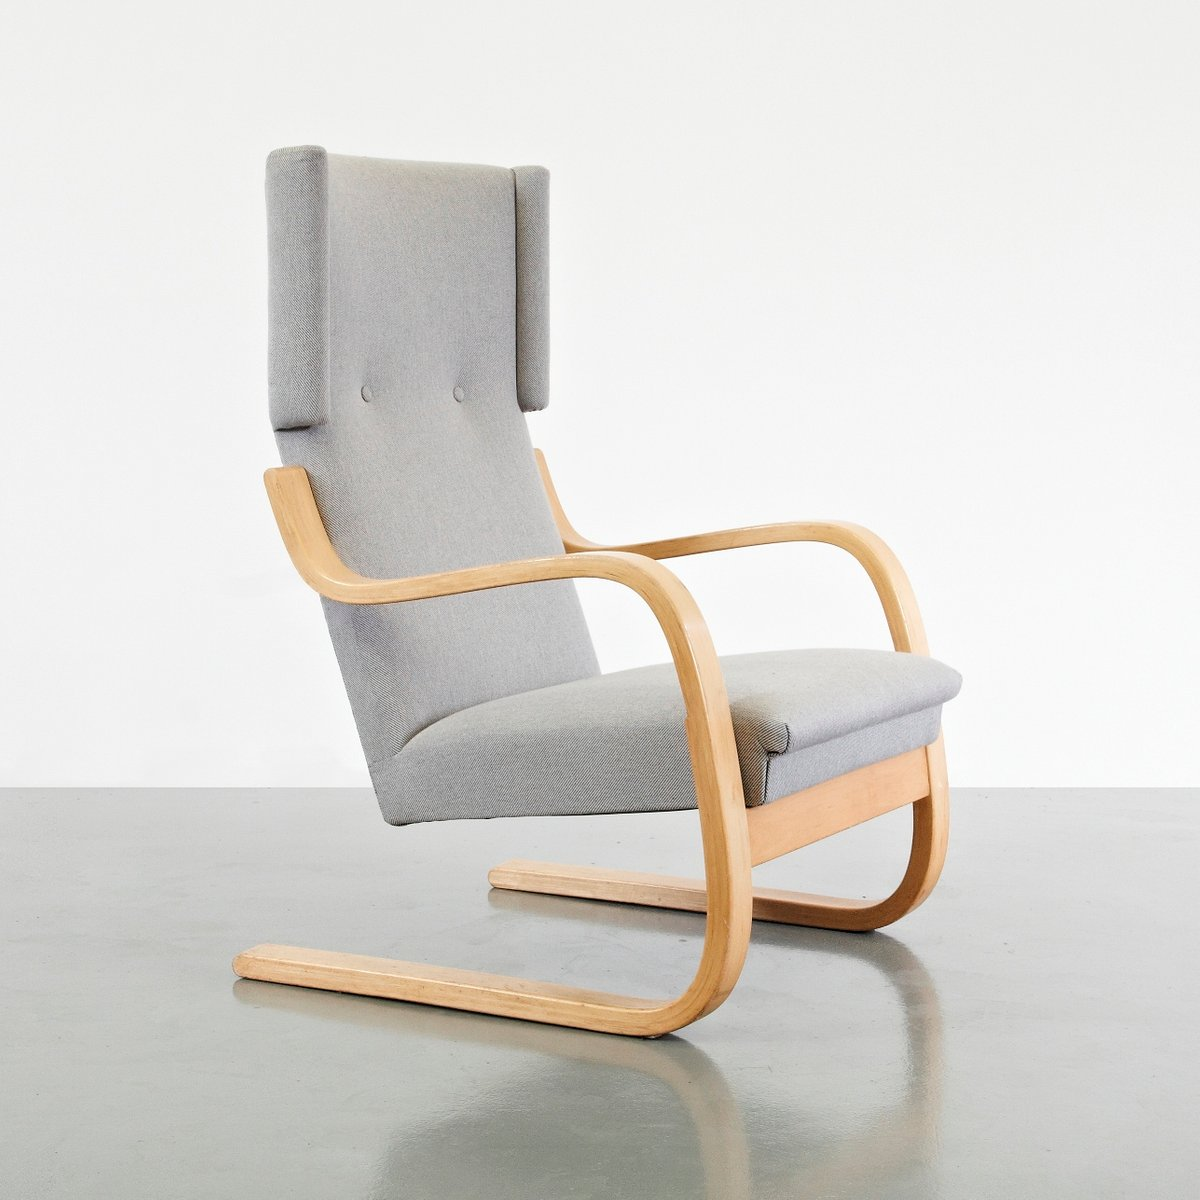 Wingback lounge chair by alvar aalto 1950s for sale at pamono for Aalto chaise lounge